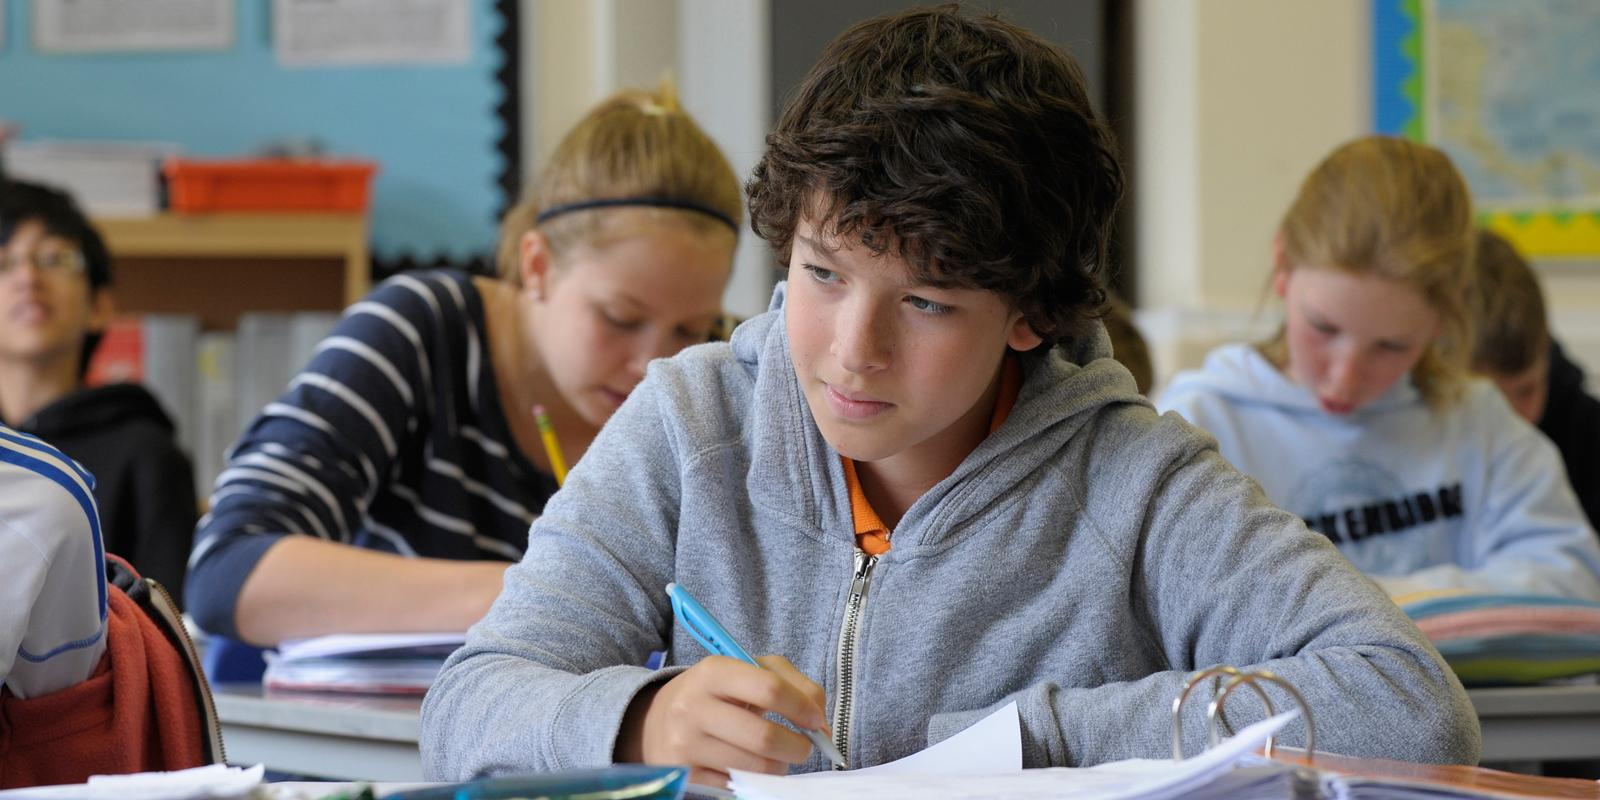 Egham student studying in classroom